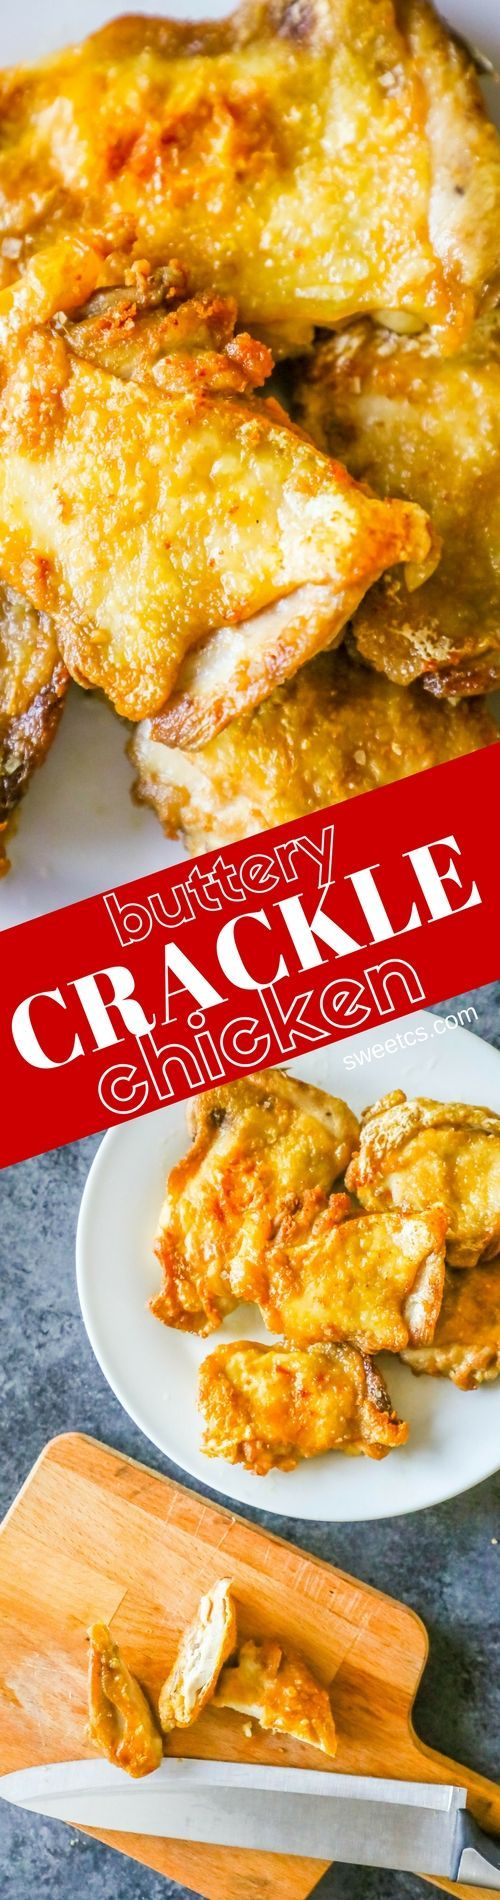 Buttery Crackle Chicken Thighs are the most delicious, juicy, and super crunchy-crackly chicken thighs you'll ever make! Simple ingredients and crazy easy!